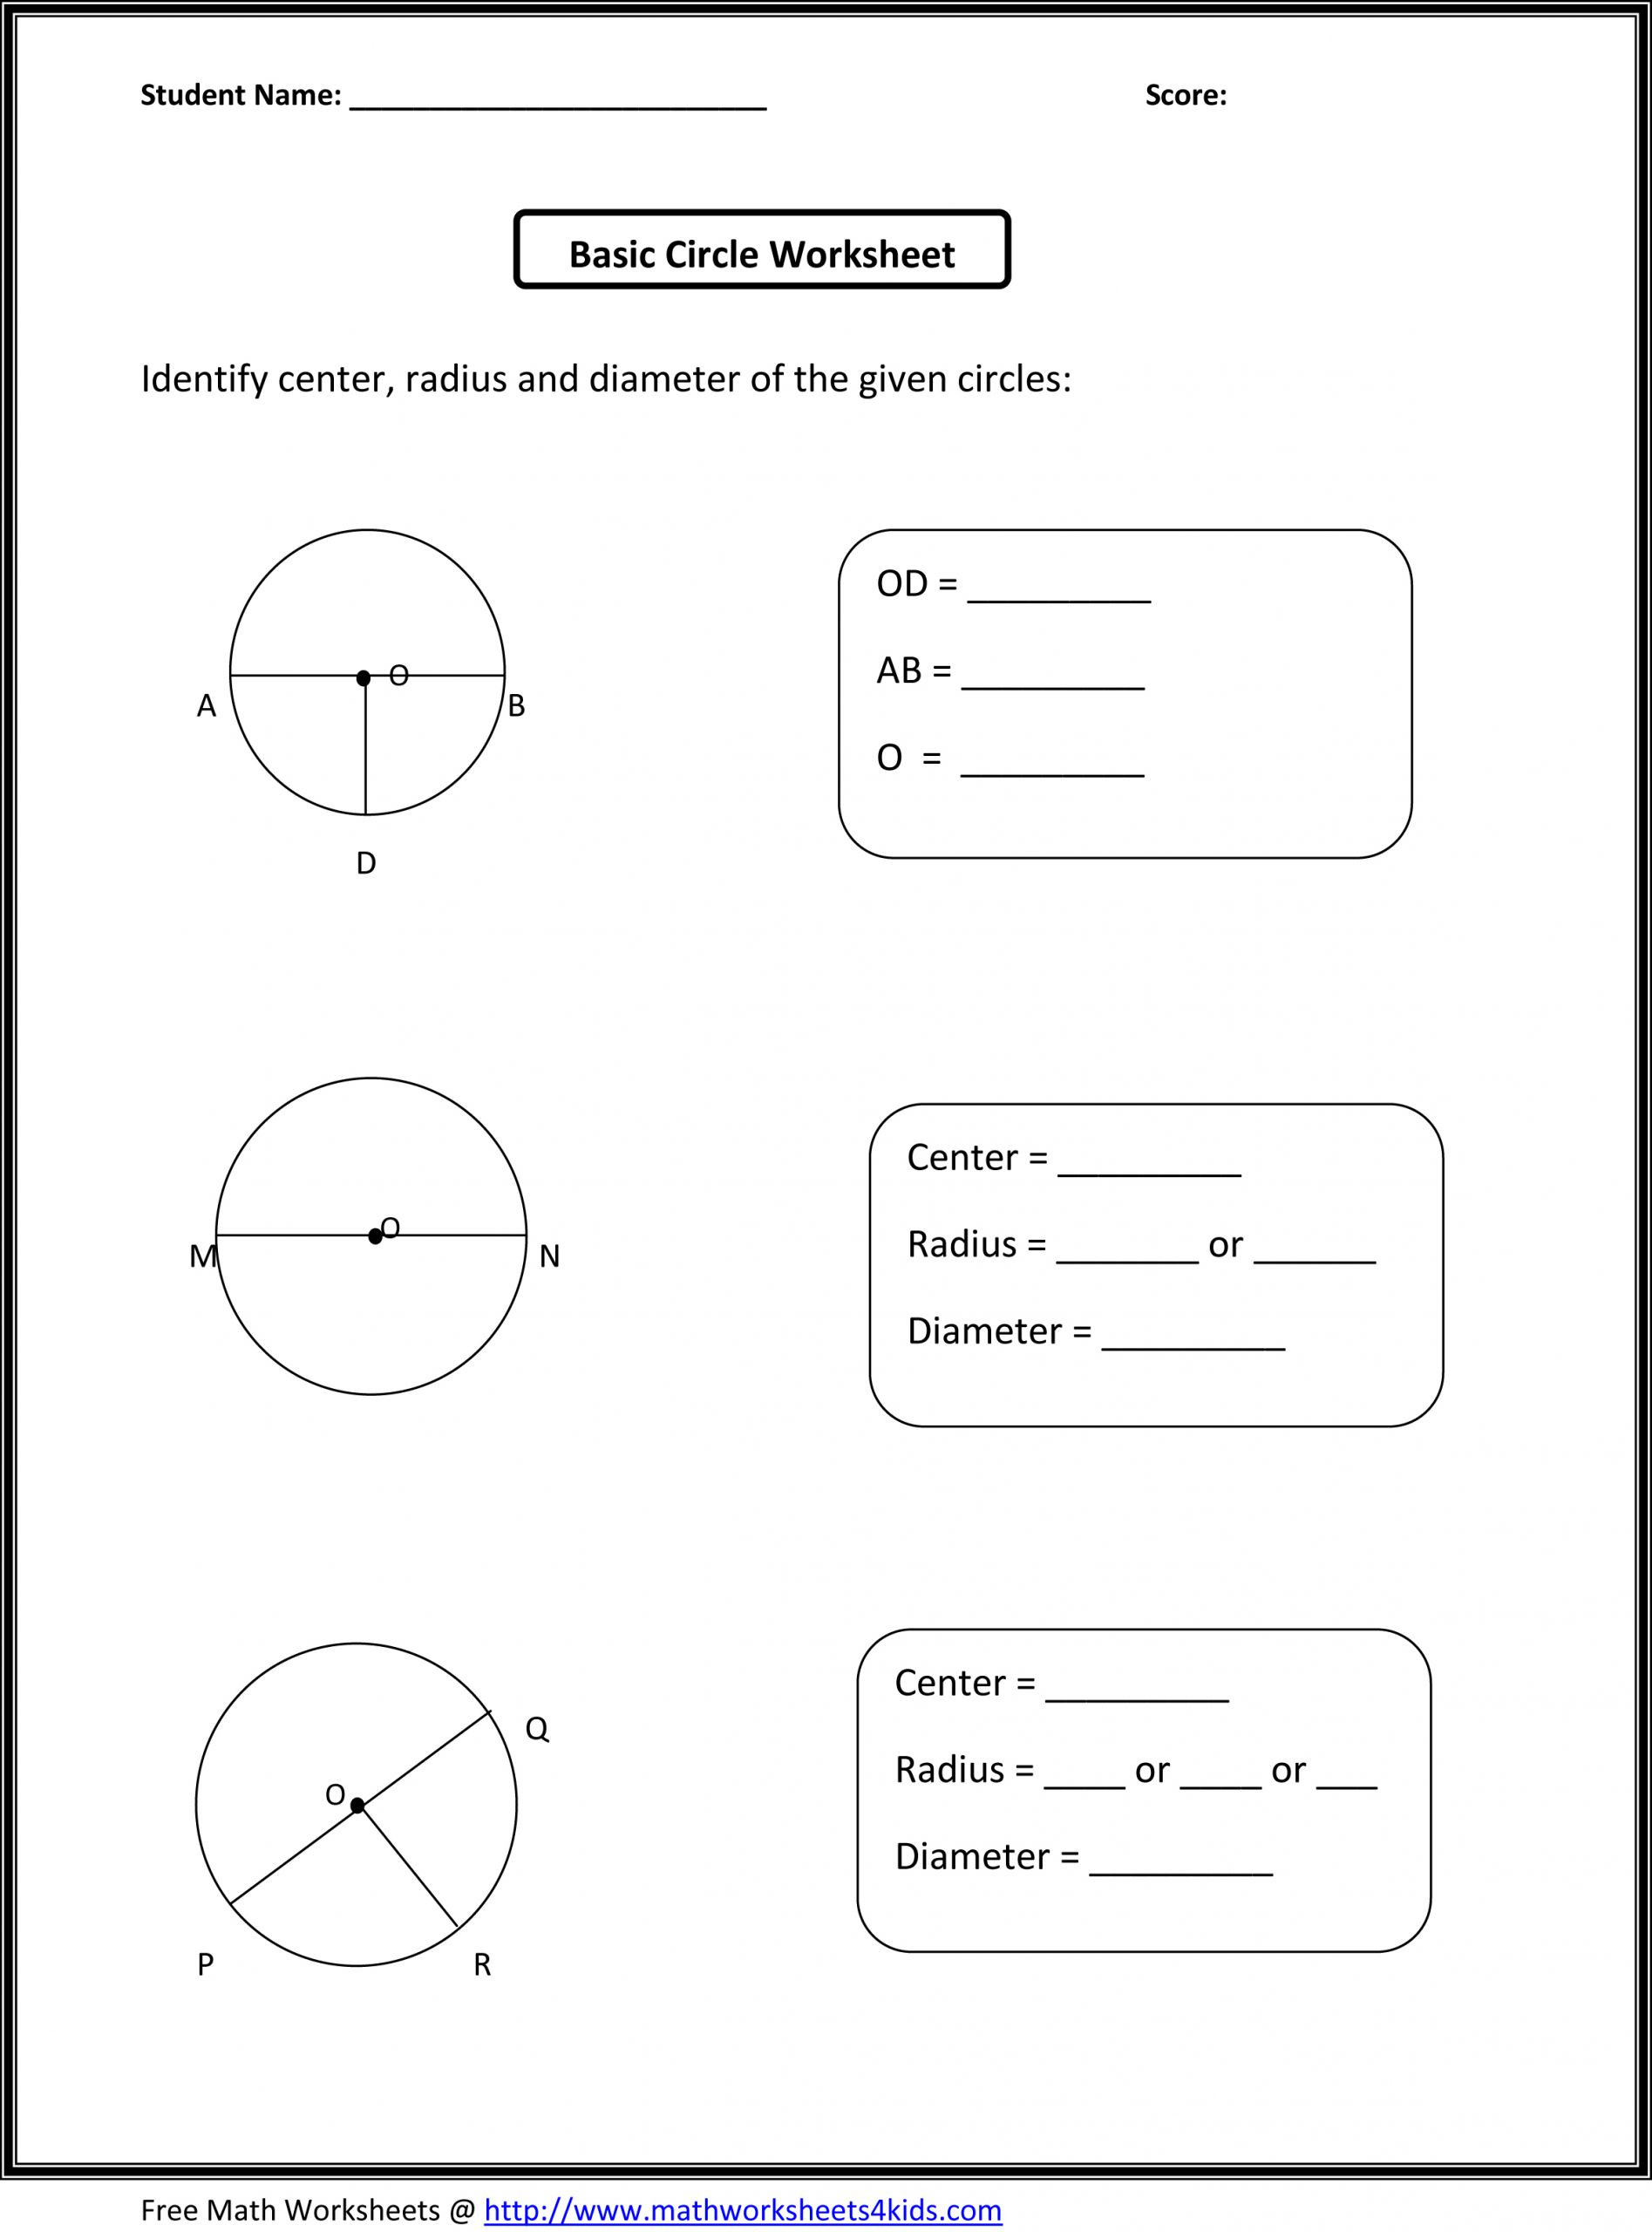 Probability Worksheets 7th Grade 4 Probability Worksheets 7th Grade